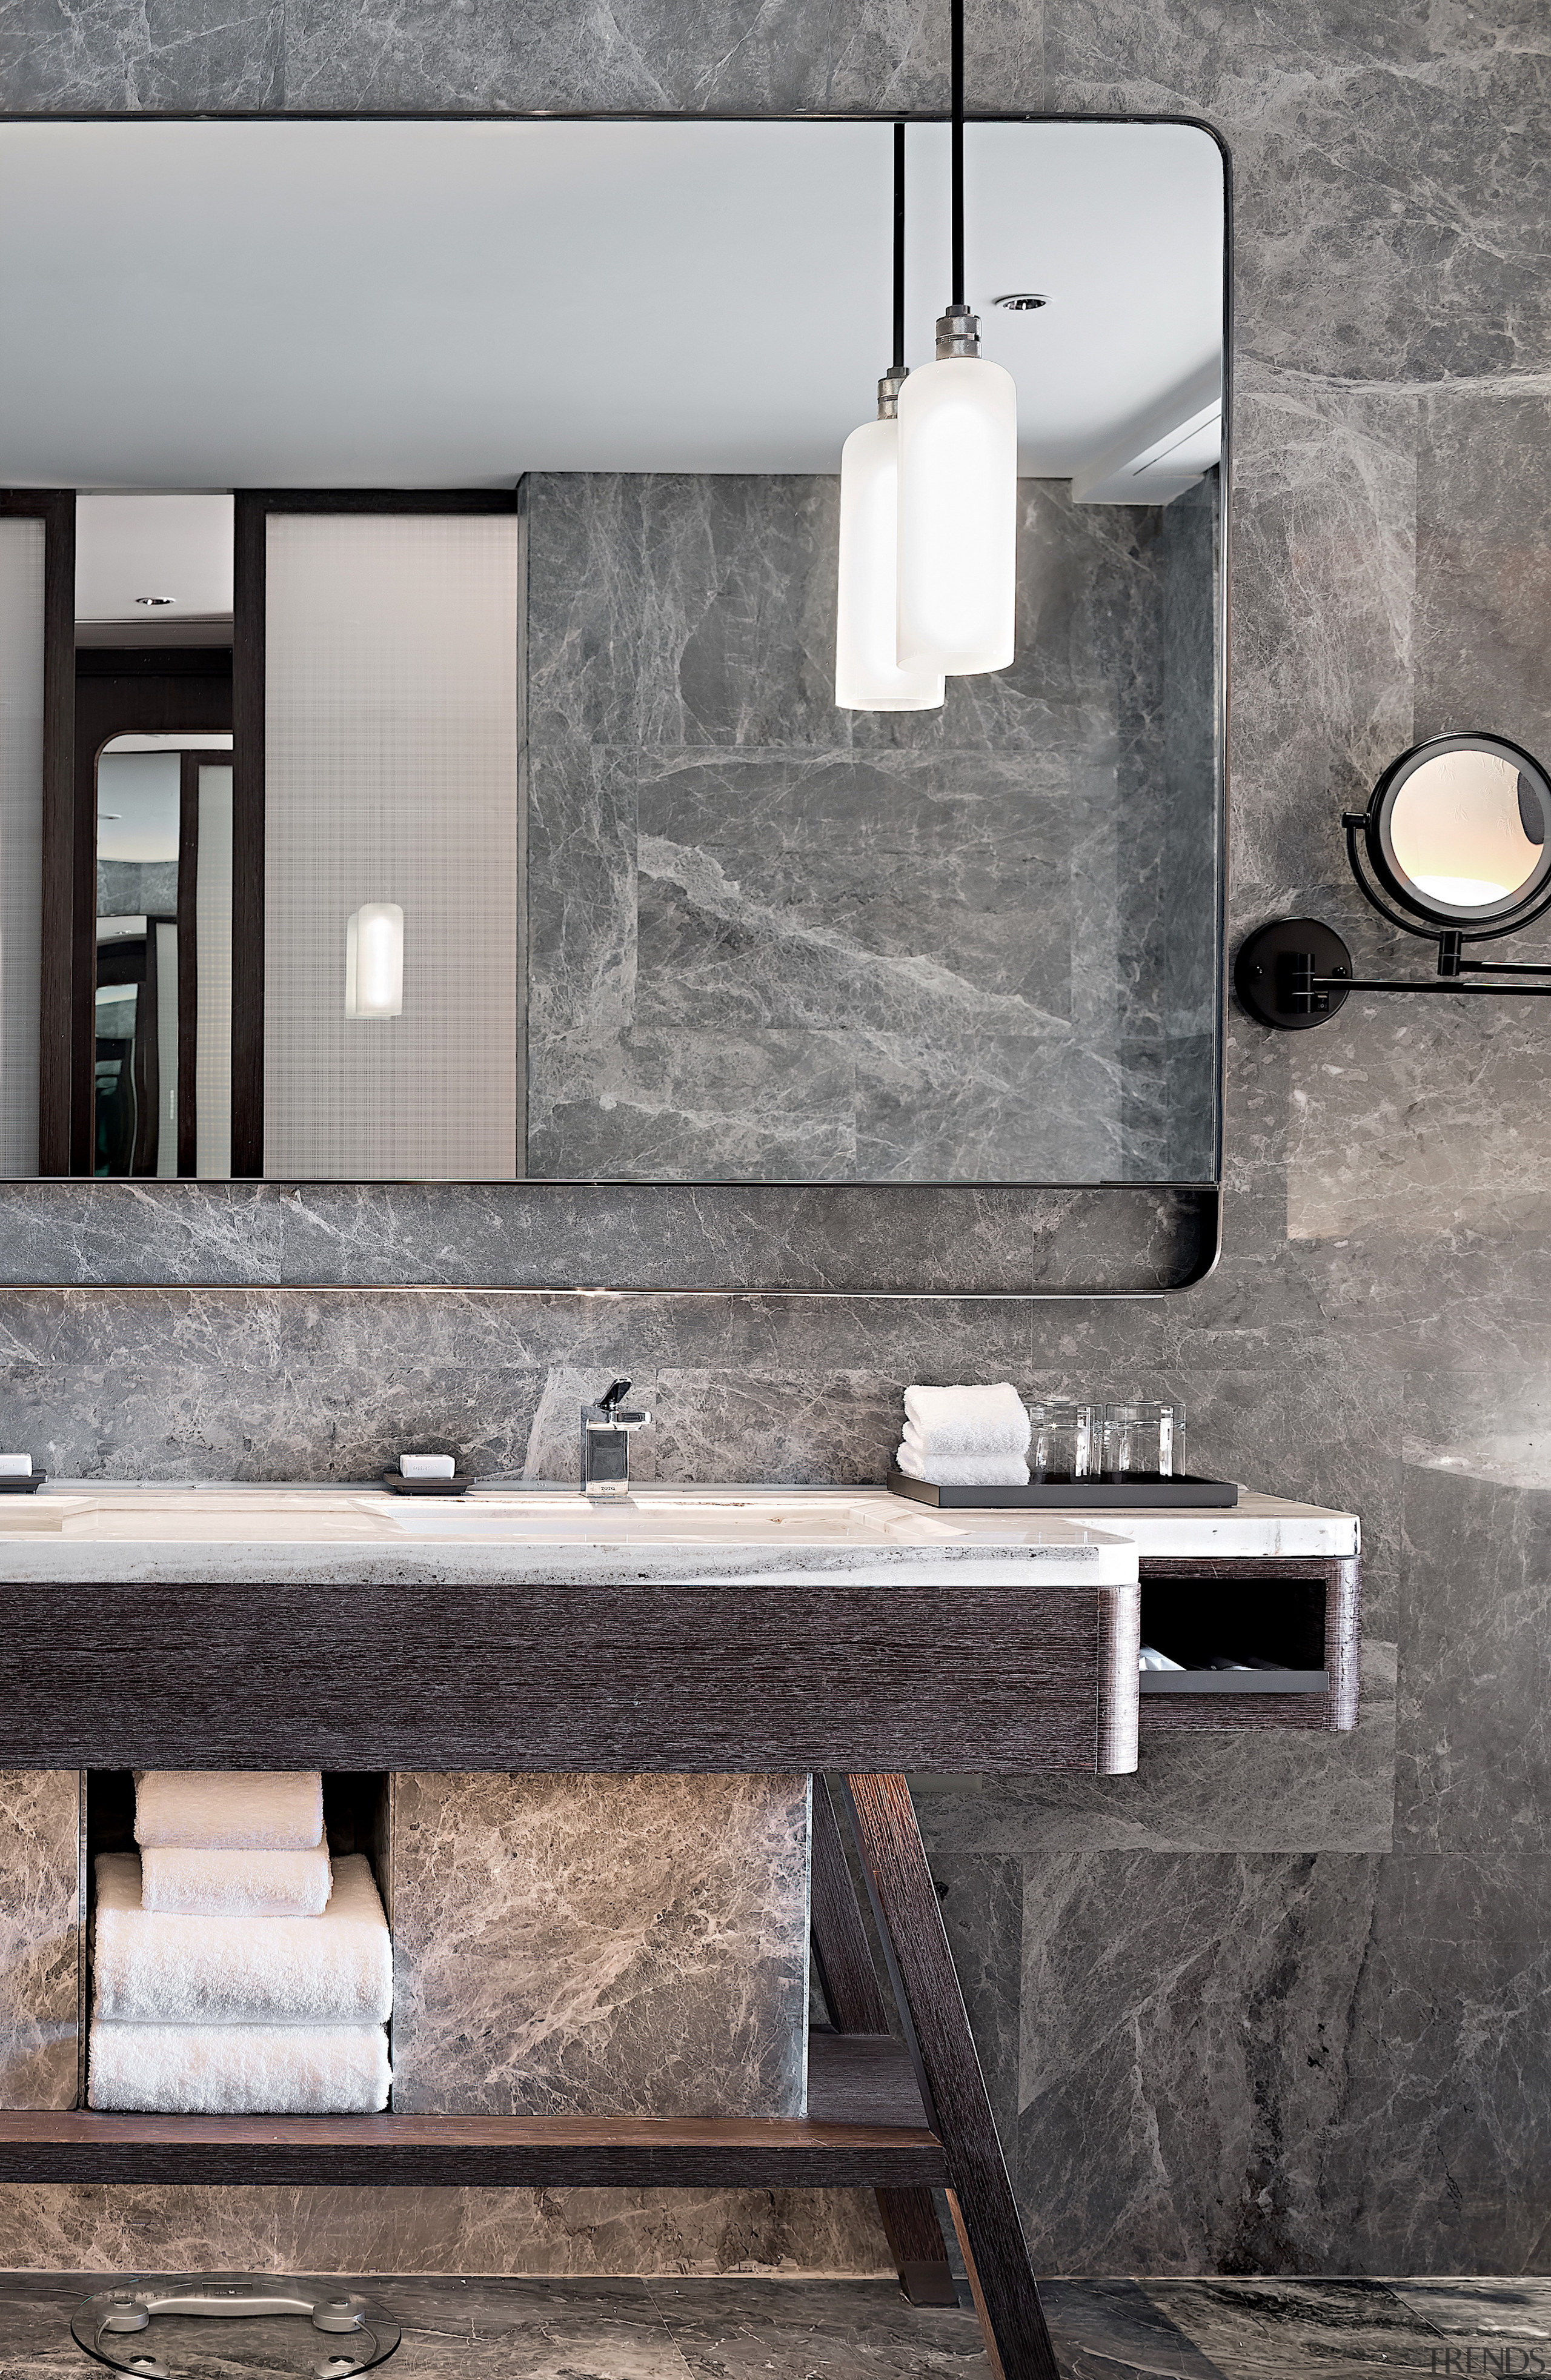 The bathrooms in the Executive Suites combine a